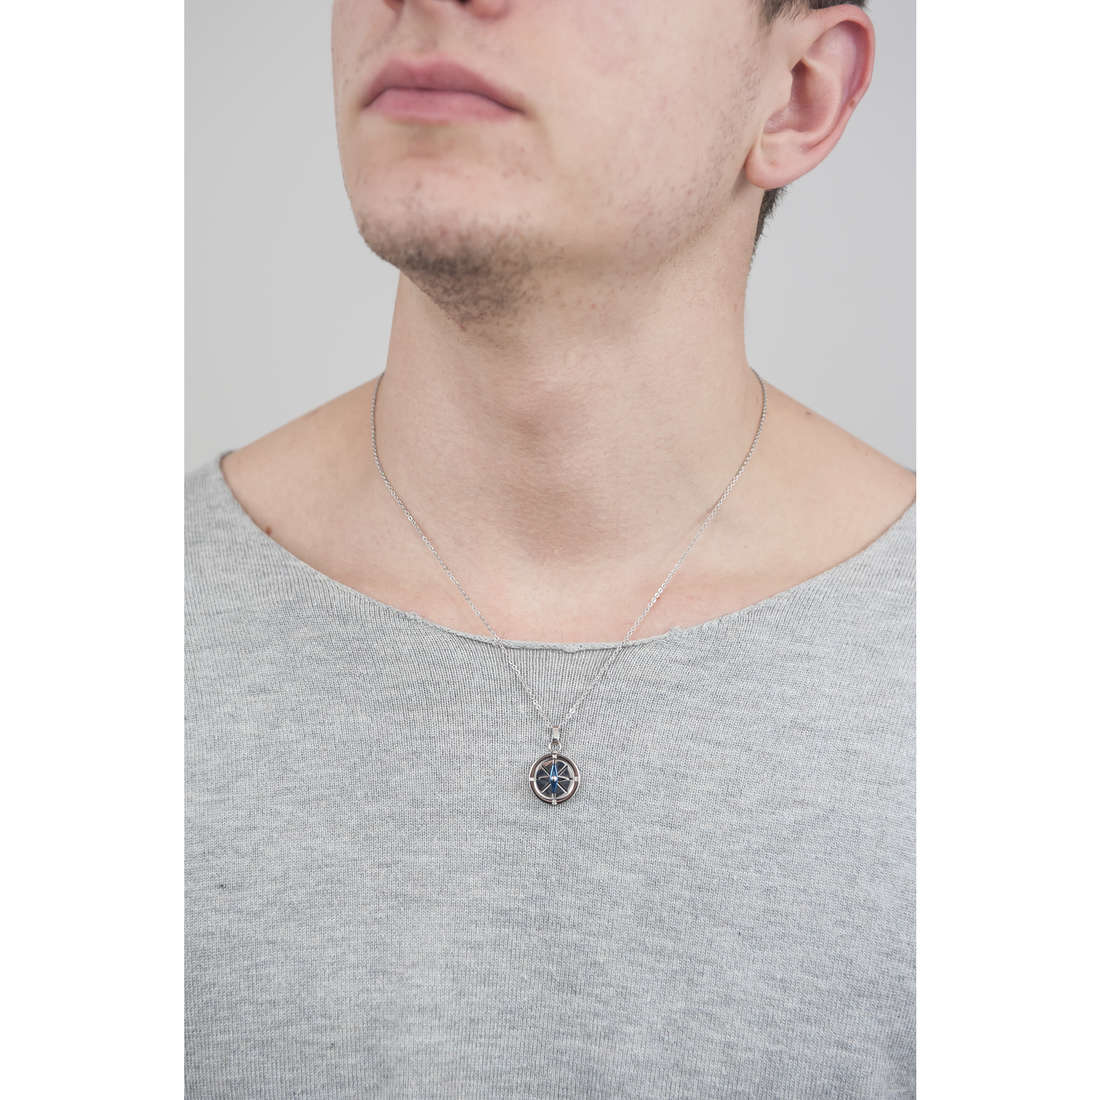 Luca Barra necklaces man LBCA320 photo wearing